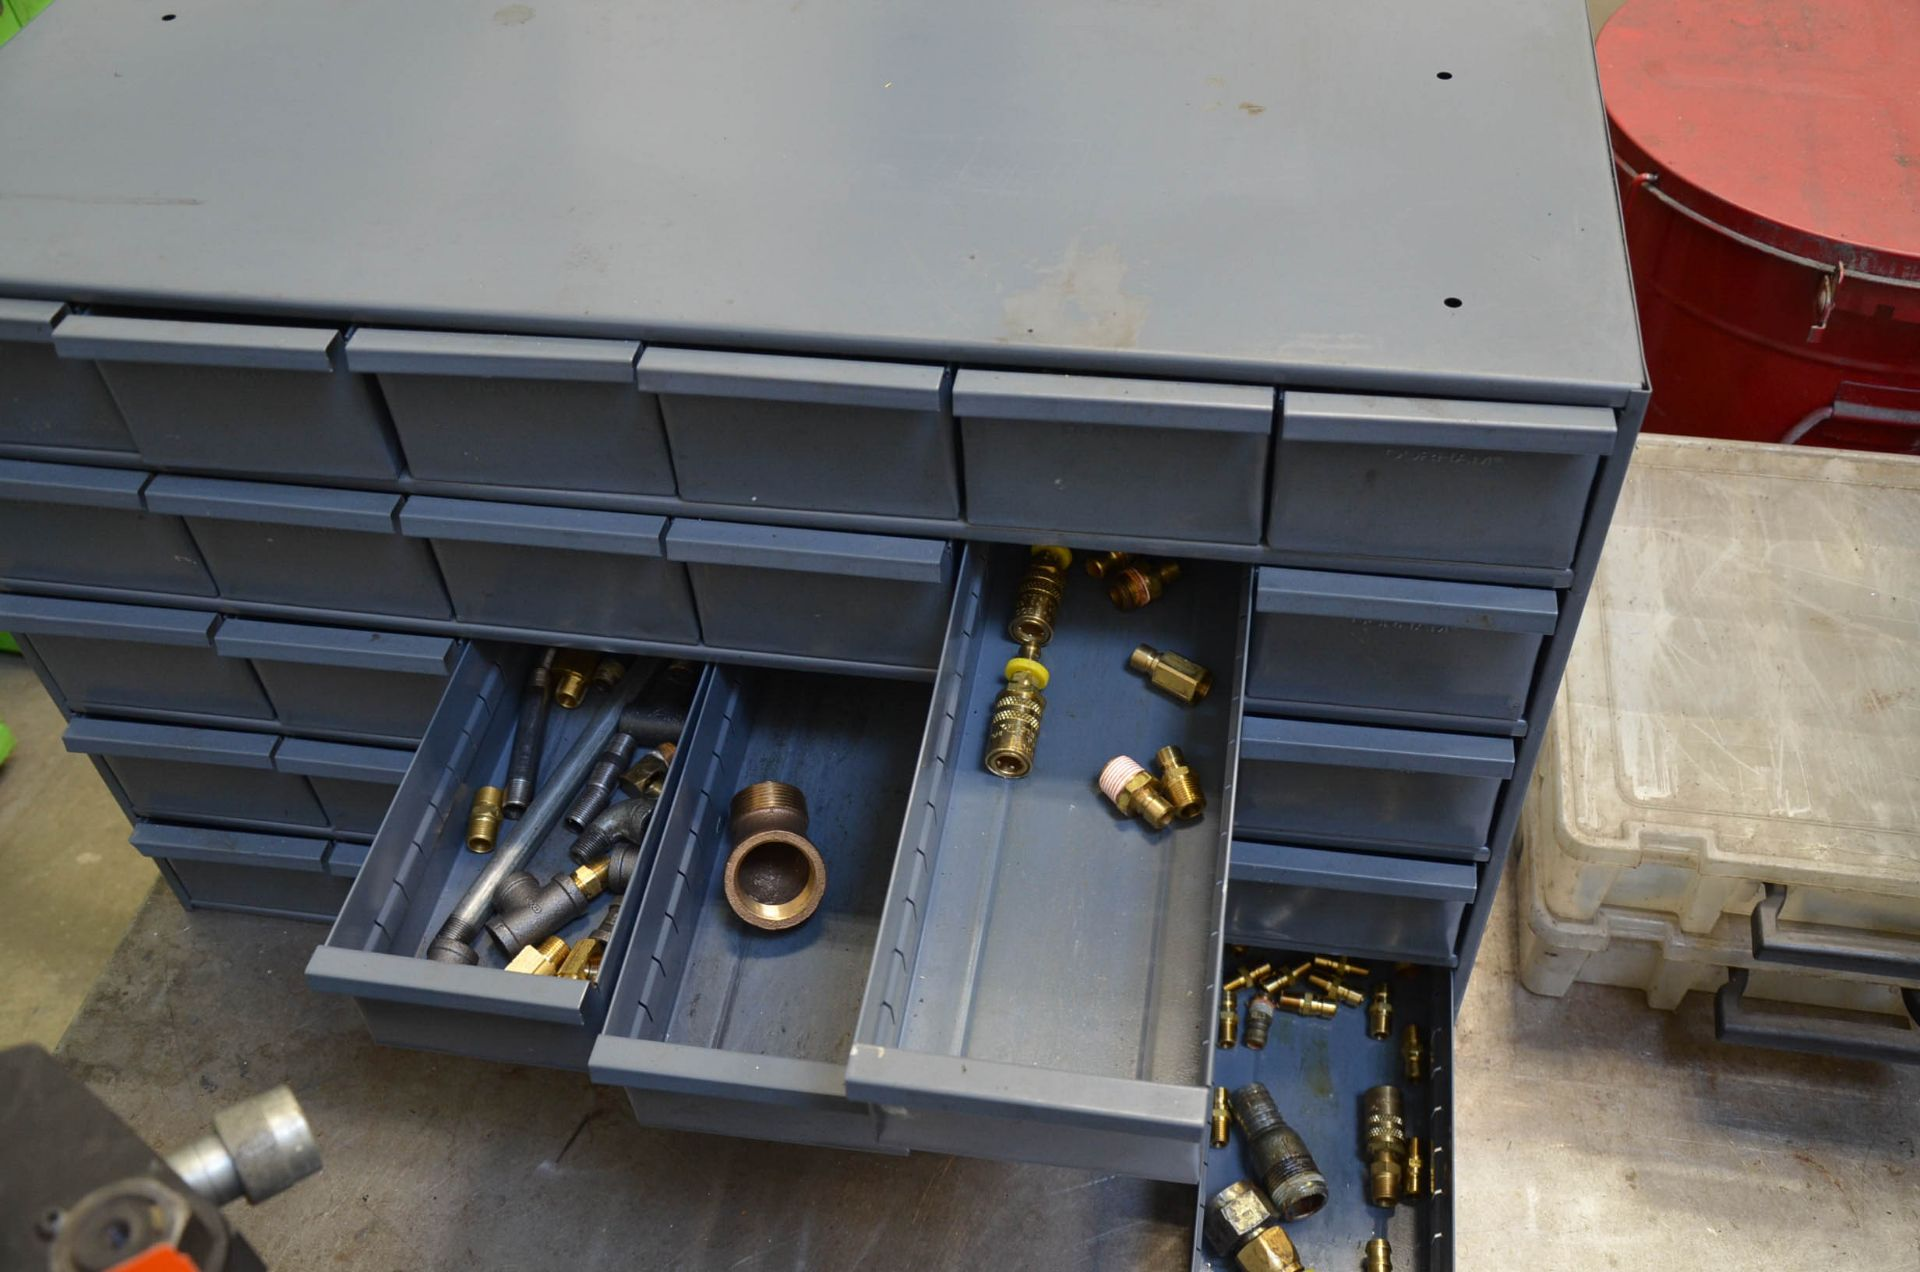 LOT/ FASTENAL INDEX CABINETS WITH HARDWARE - Image 3 of 3